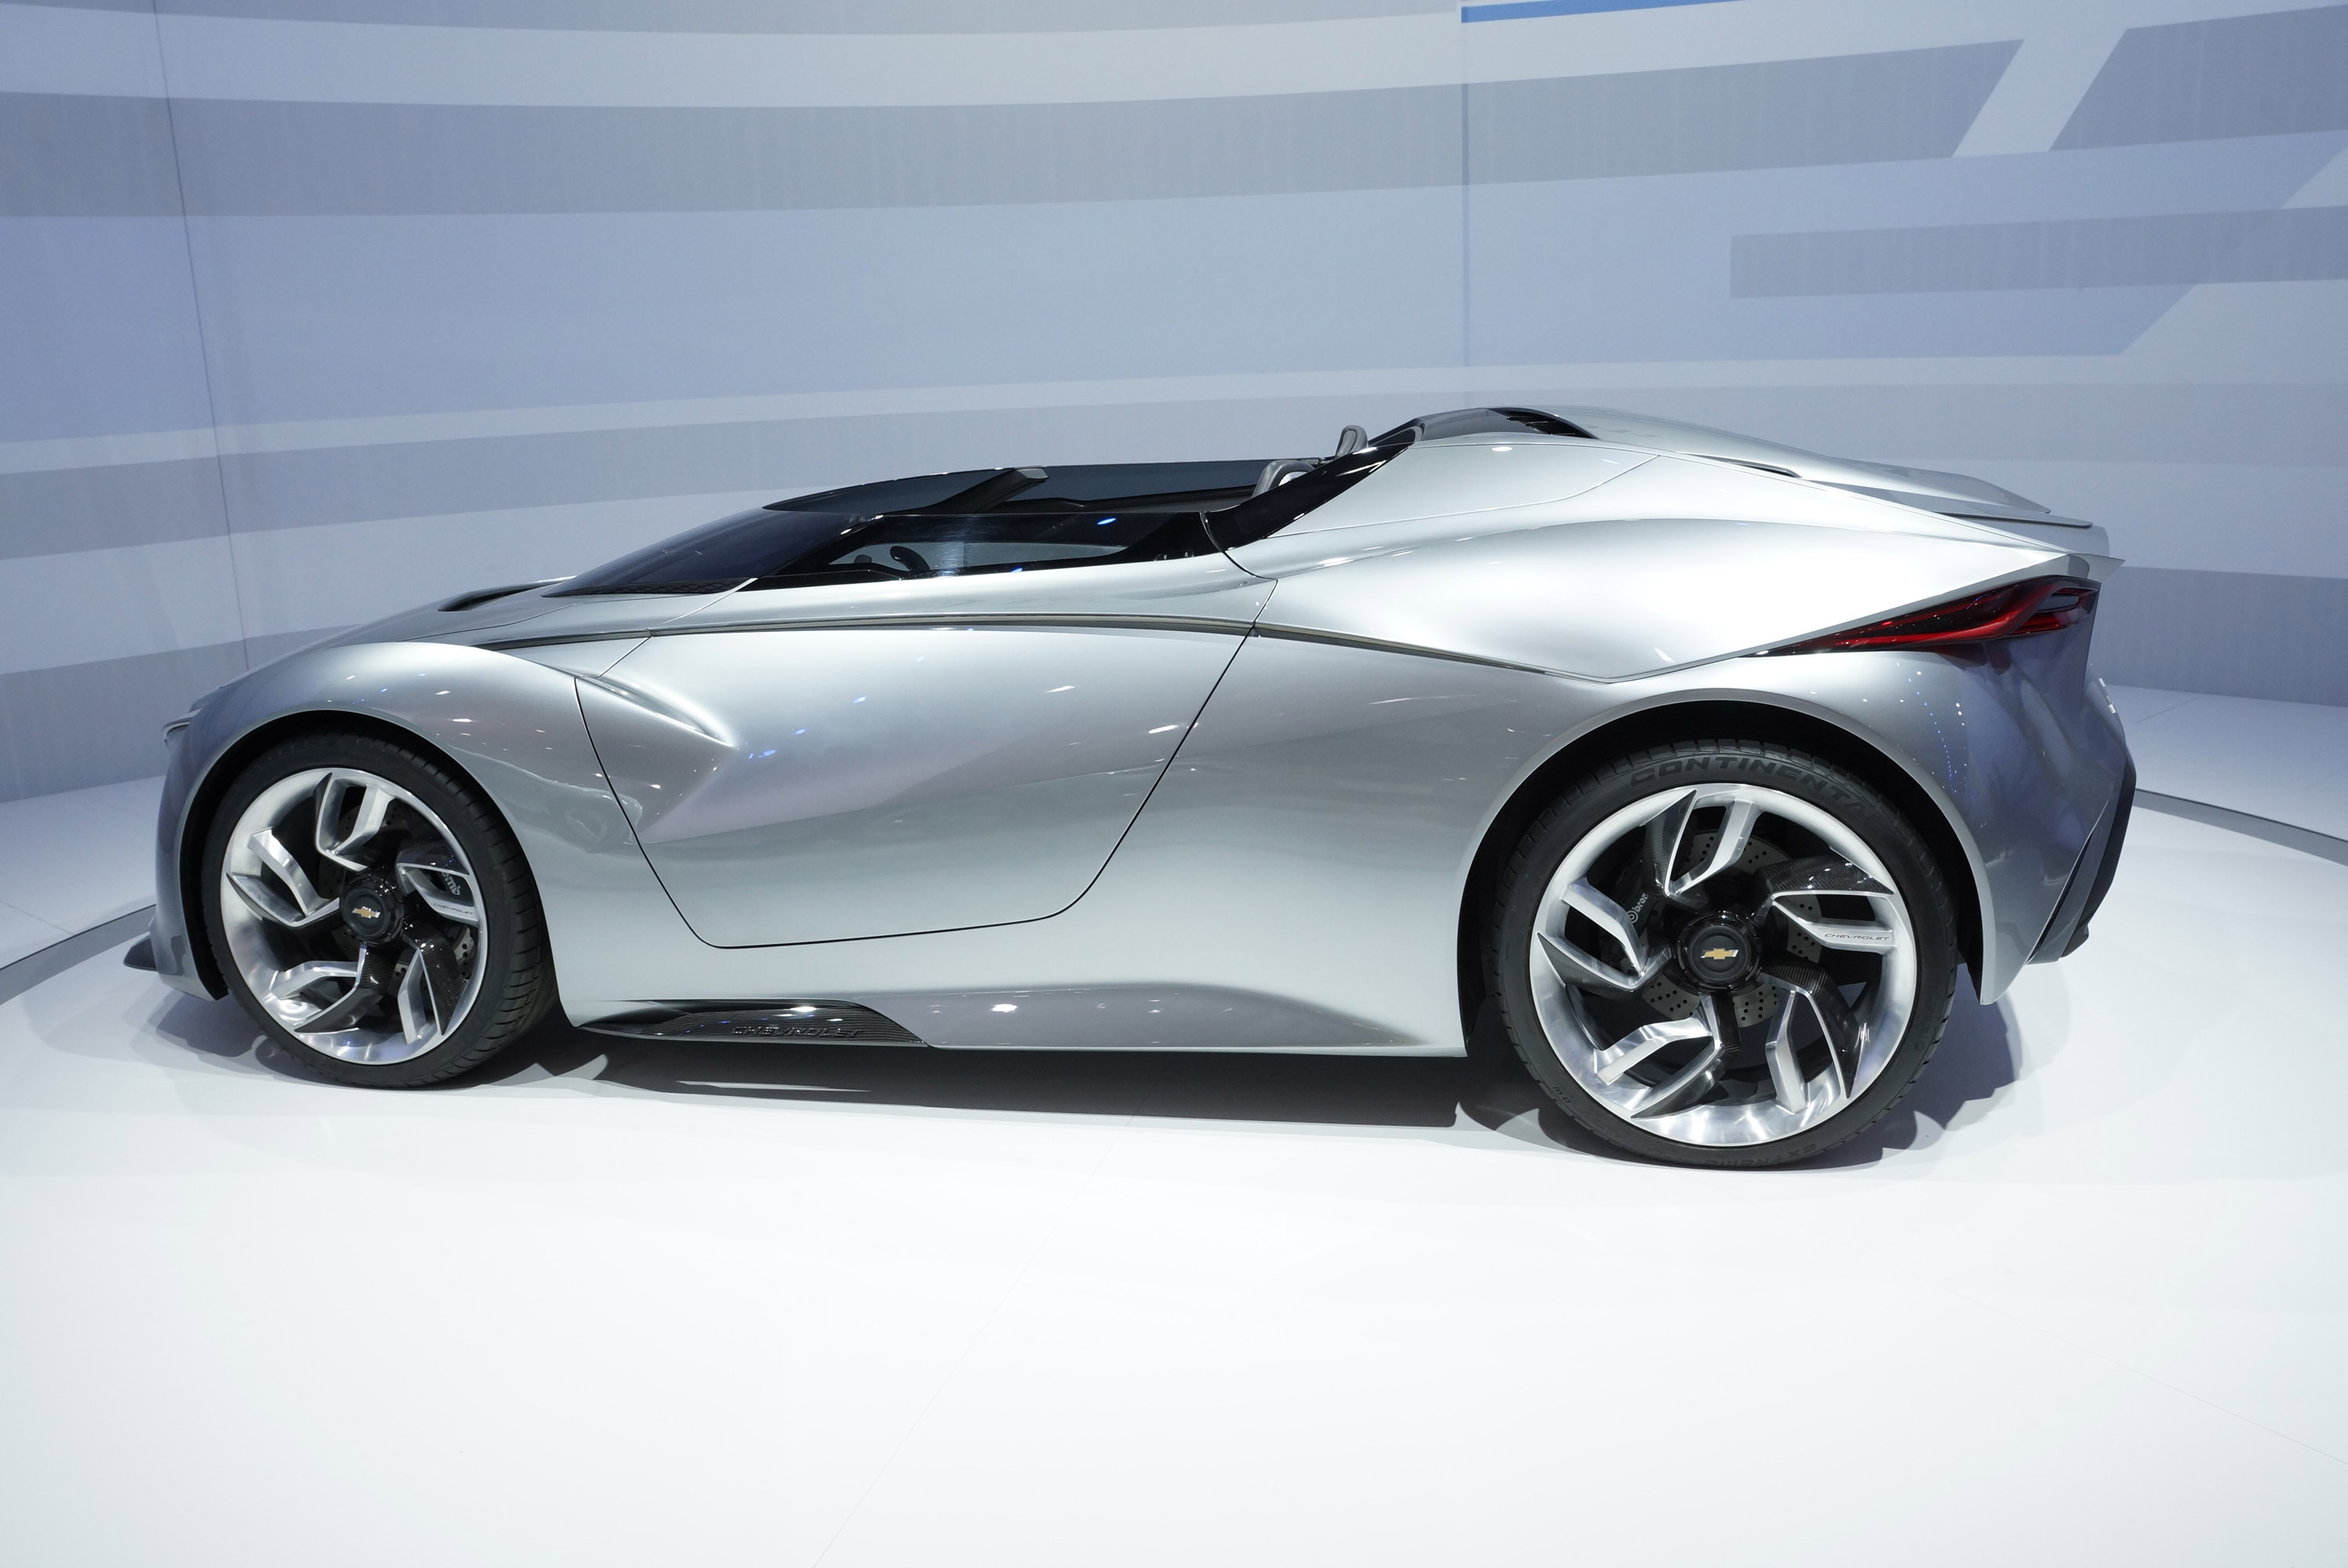 Chevrolet Miray Frankfurt Roadster Concept Car Information Wallpapers For Desktop